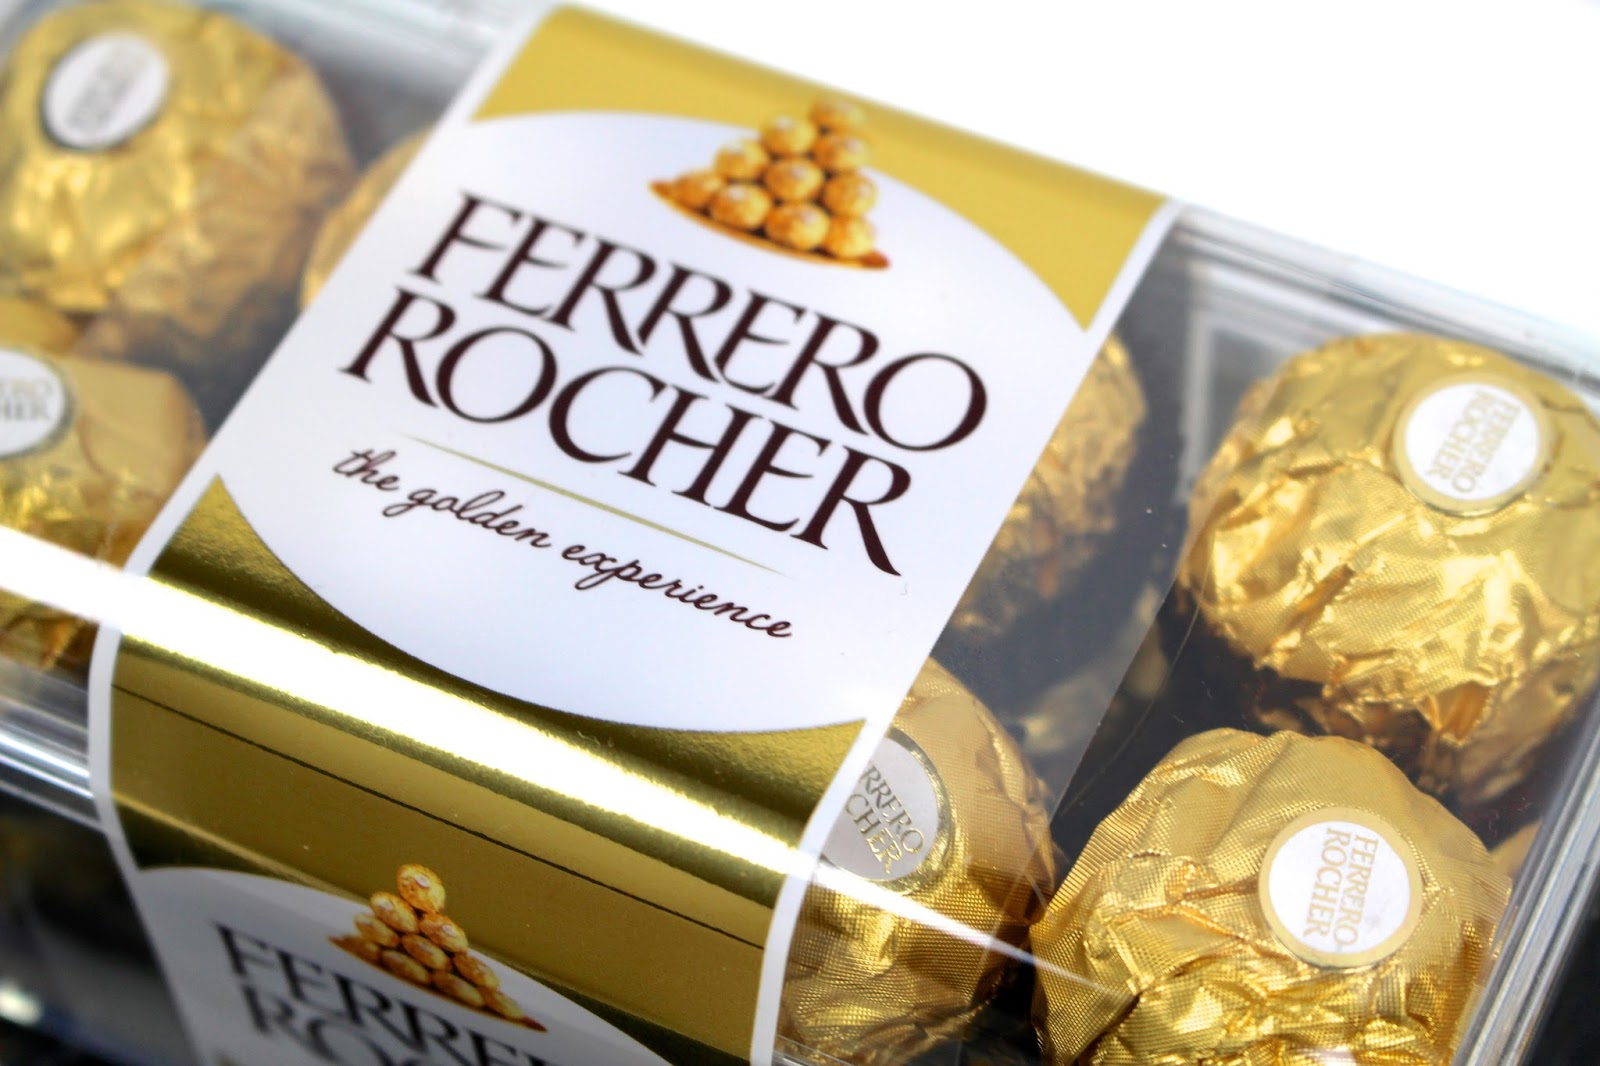 ferrero rocher gift guide